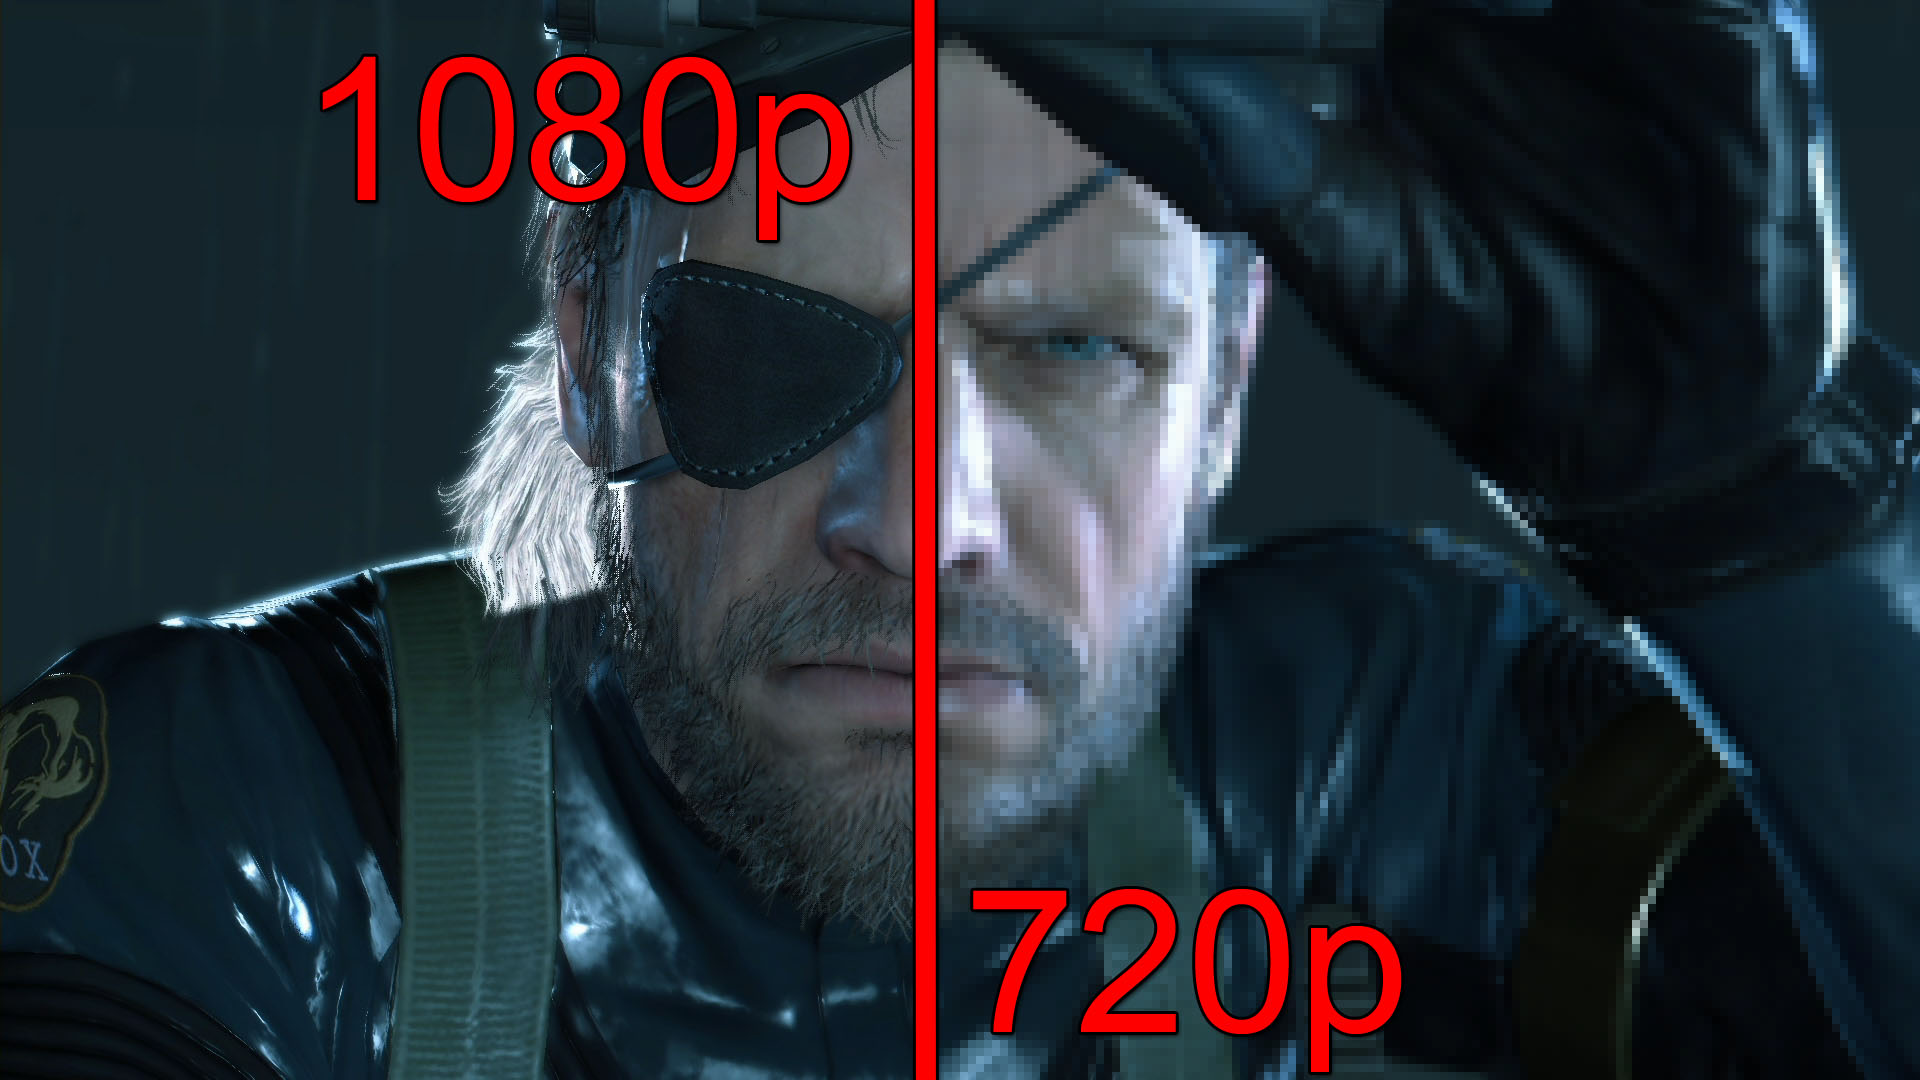 Metal Gear Solid V 1080p vs 720p Screenshot Comparison: Will the Old